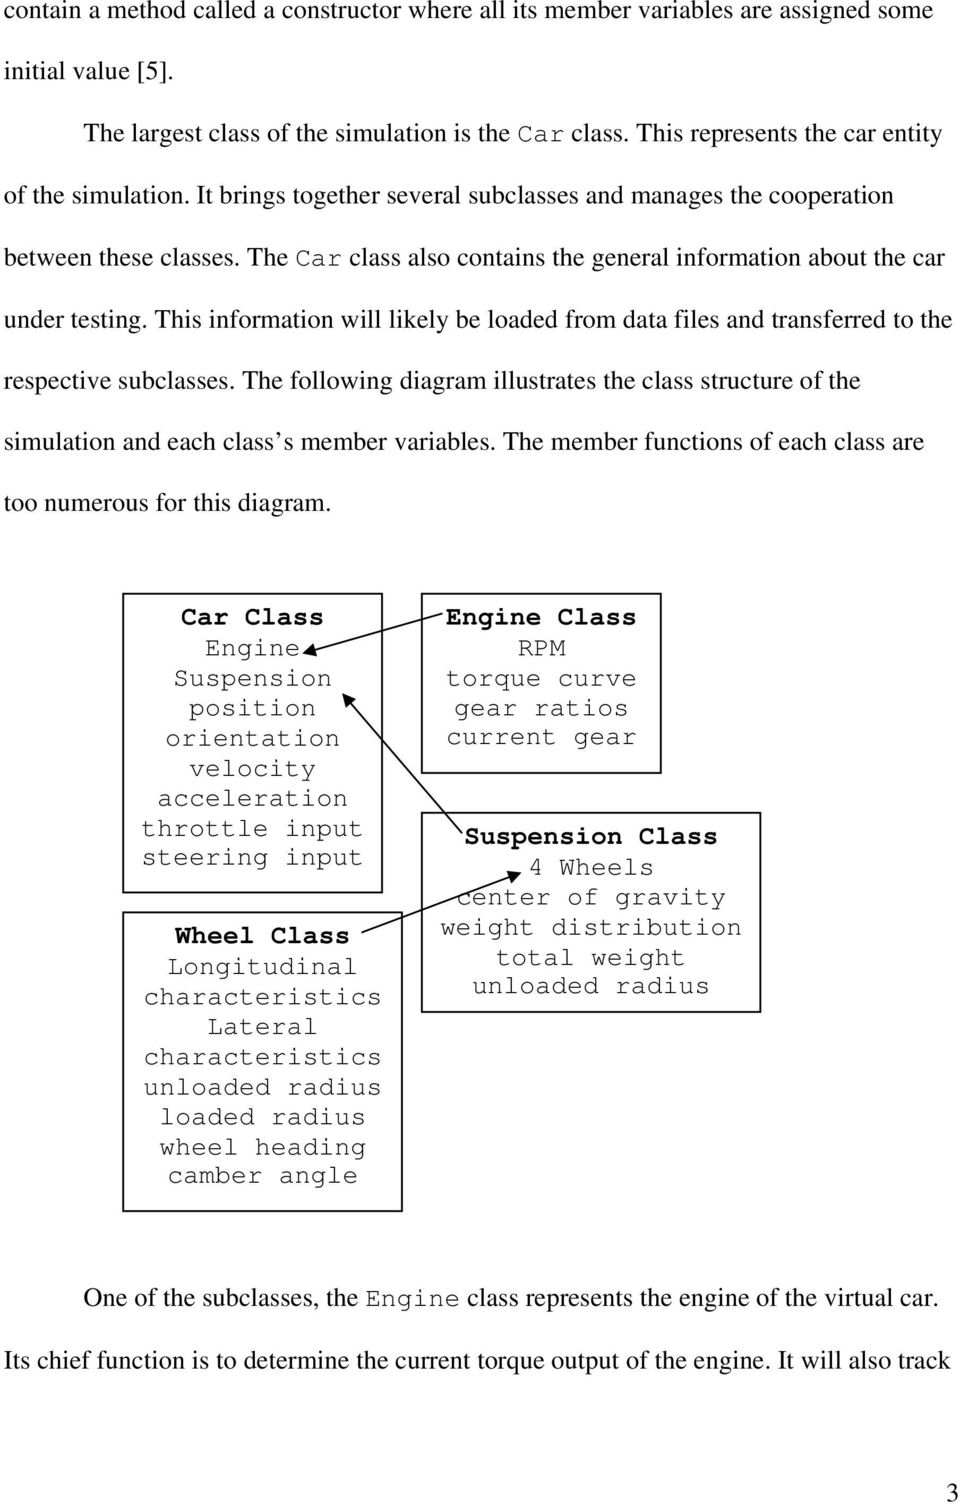 The Car class also contains the general information about the car under testing. This information will likely be loaded from data files and transferred to the respective subclasses.